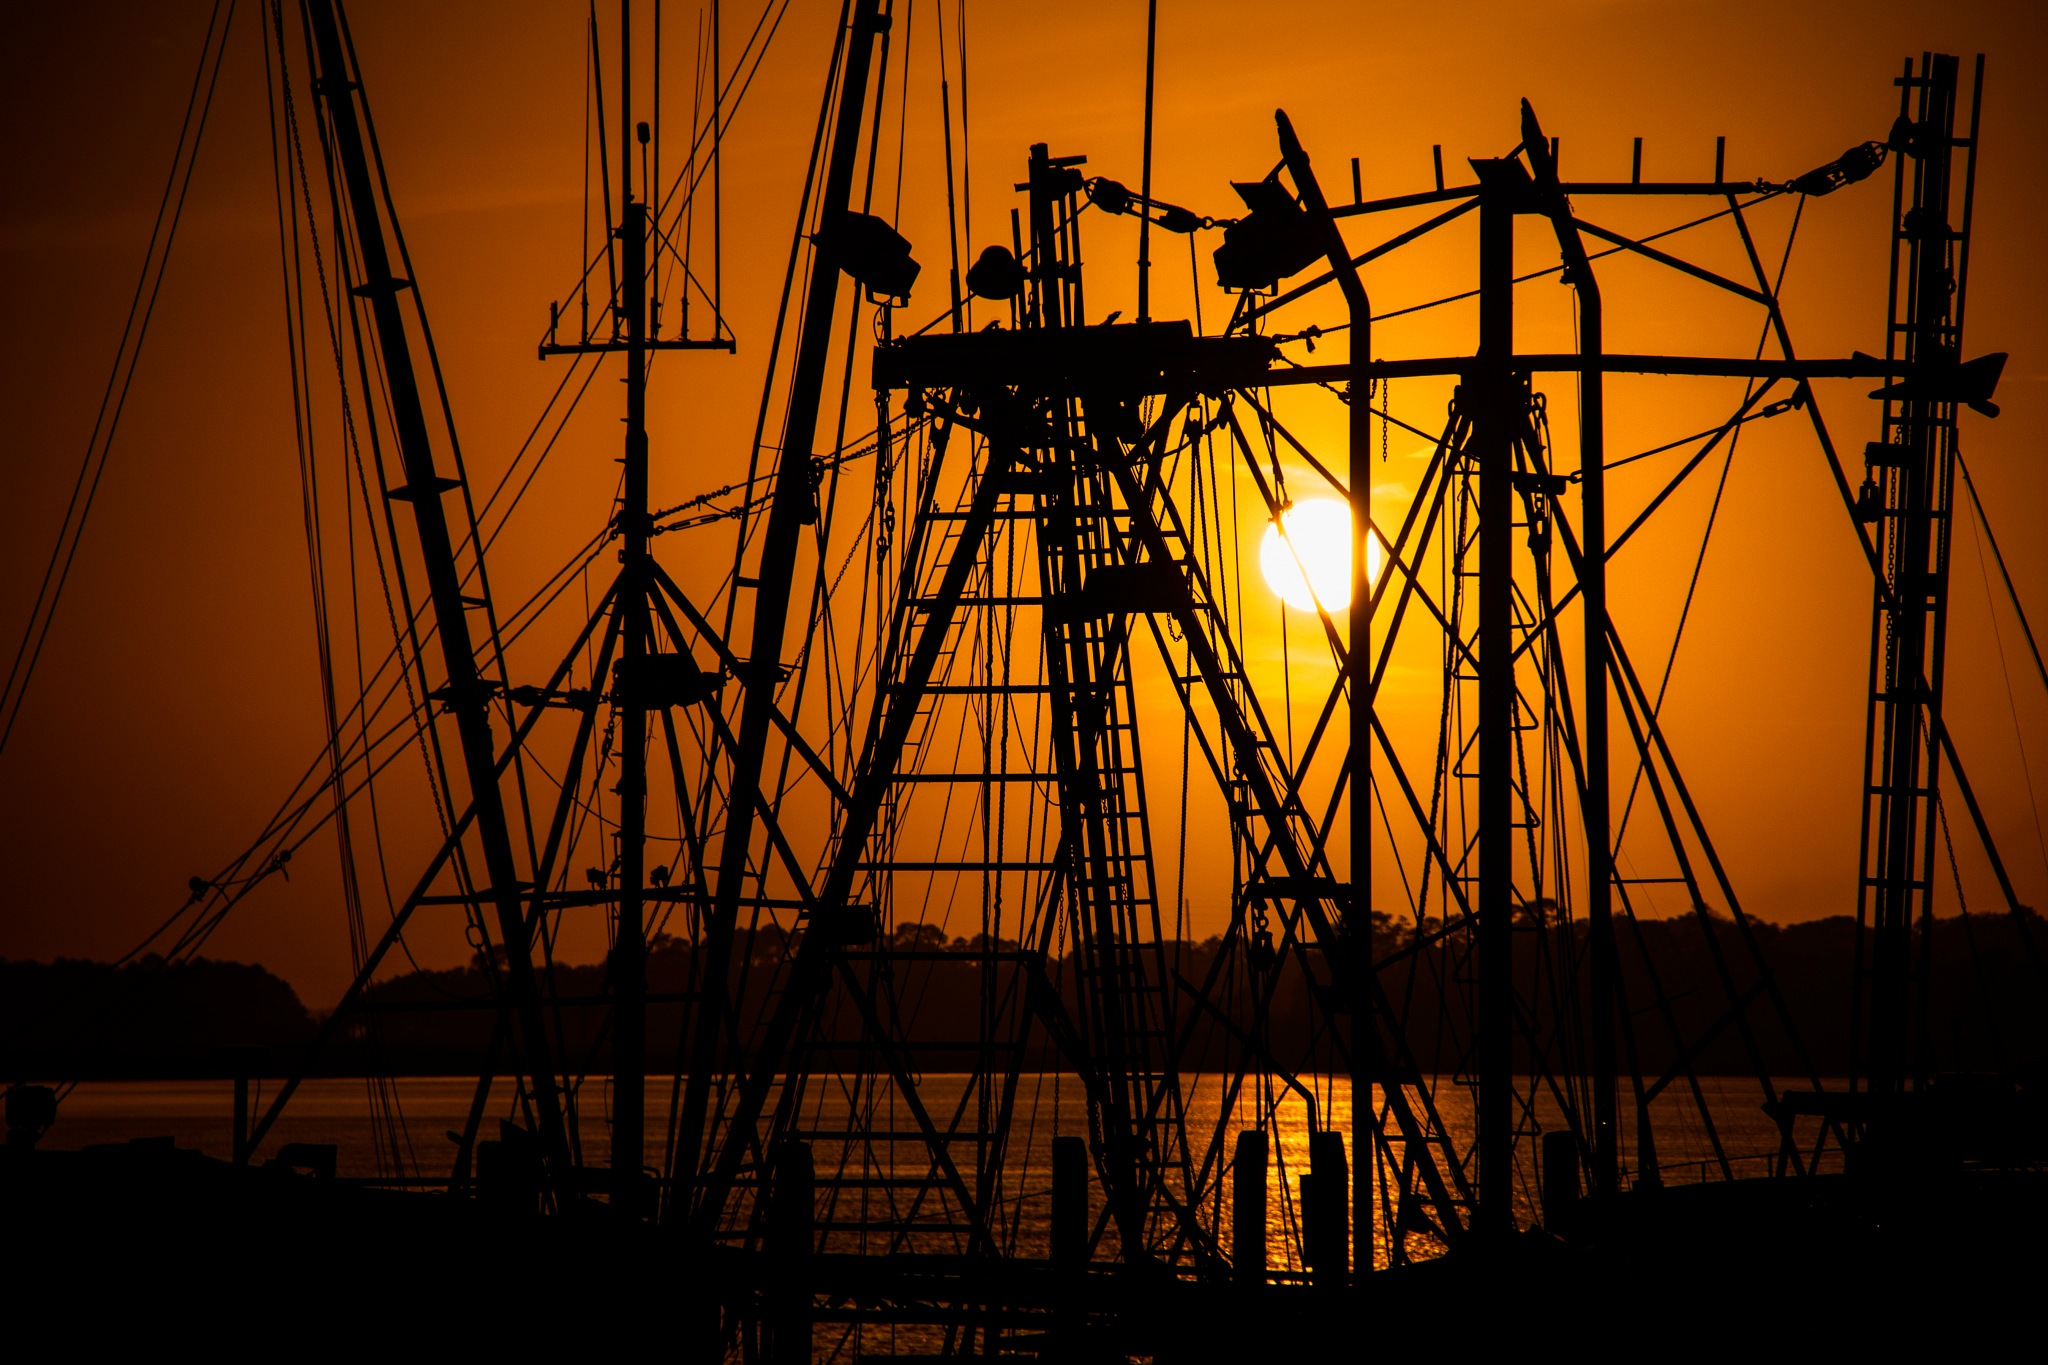 The Sails and Sun by Keith Wood